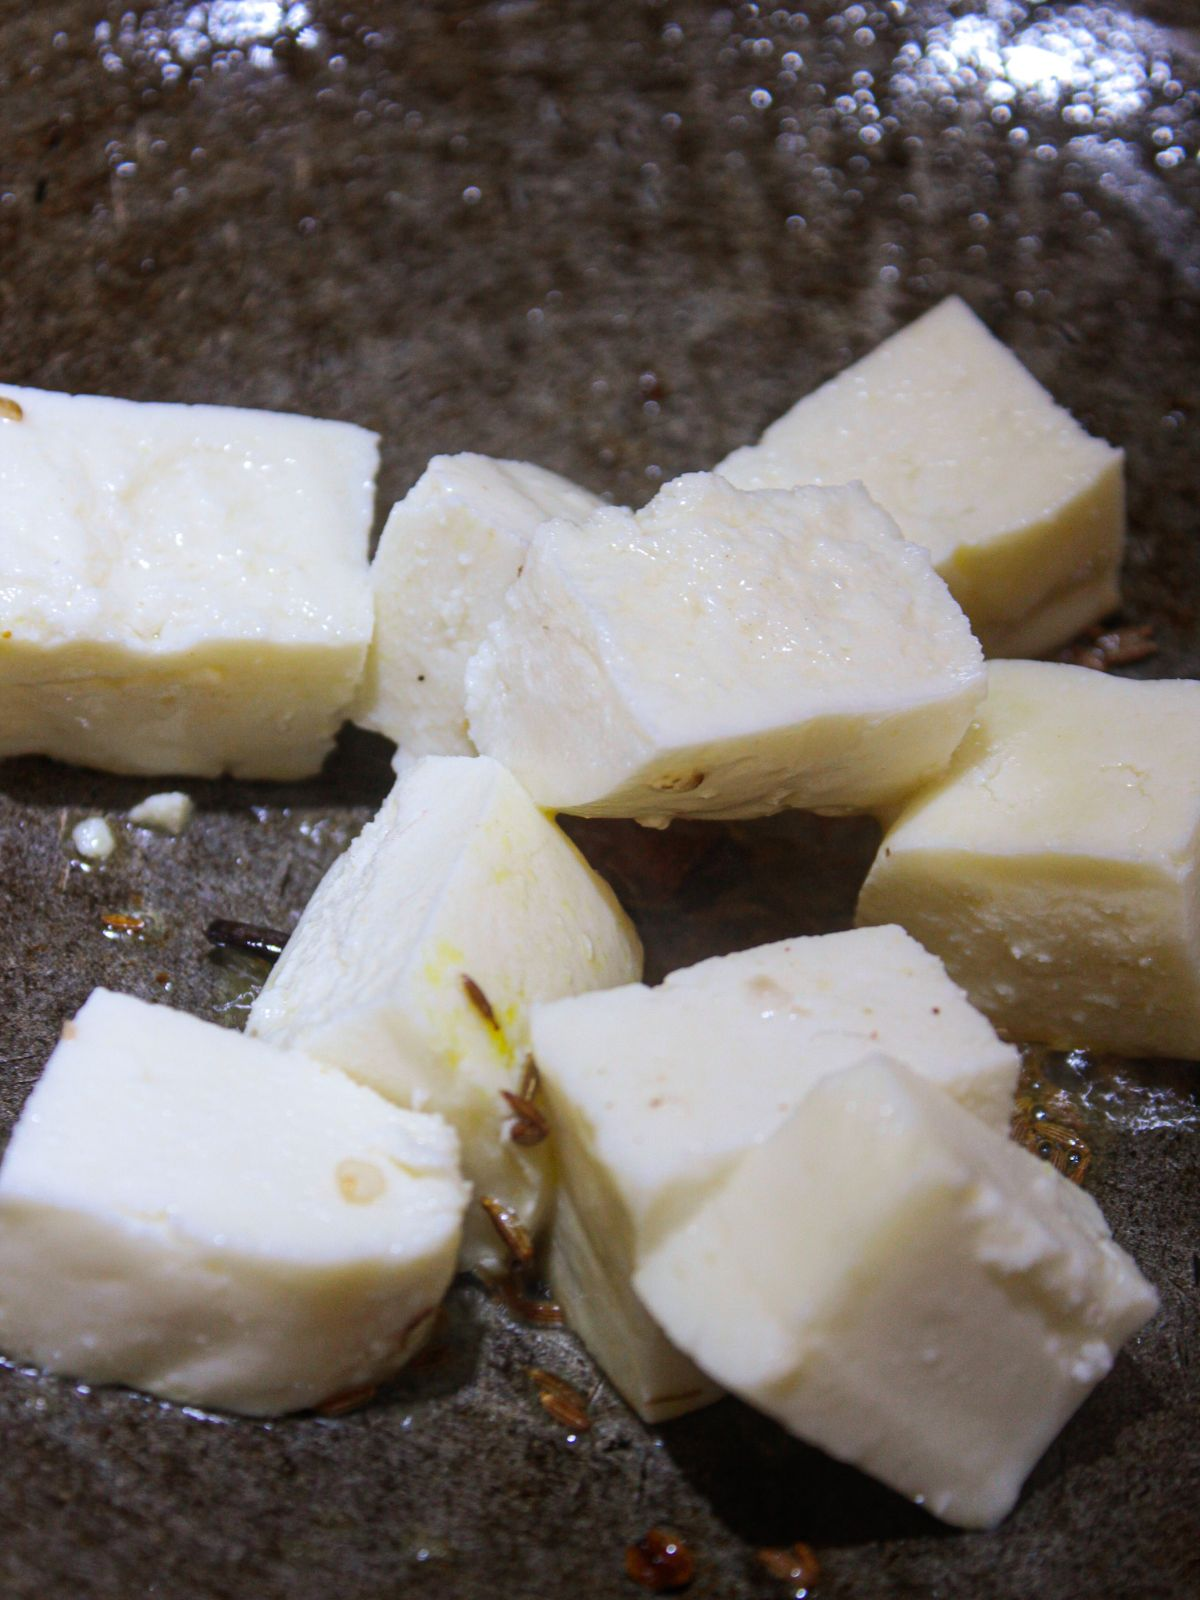 Paneer cubes in a skillet with oil